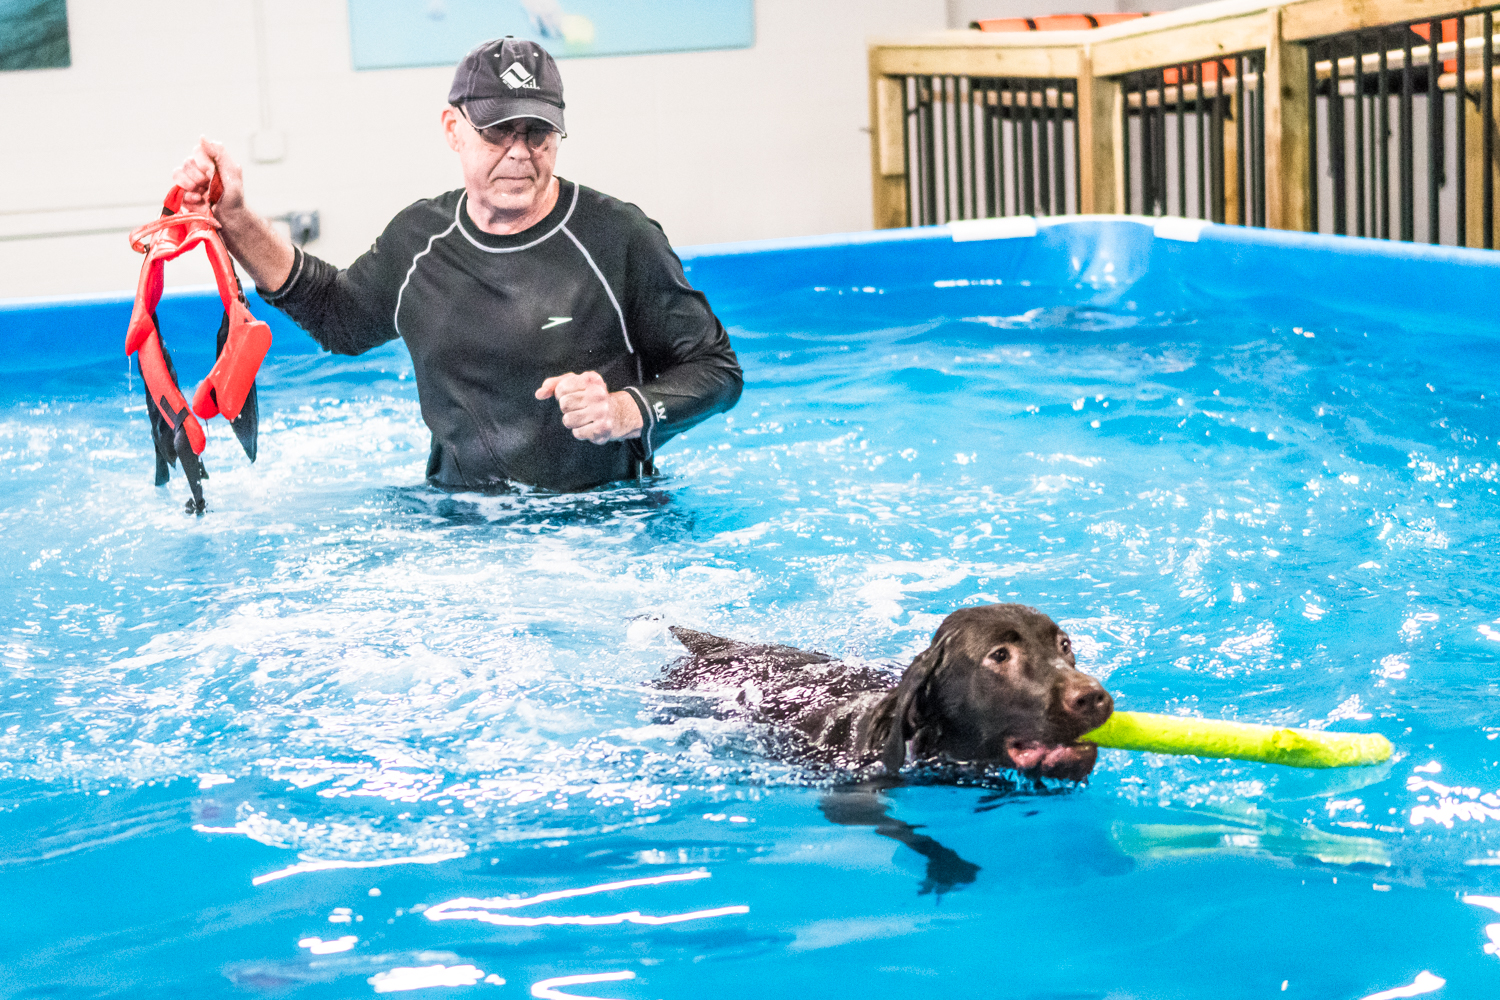 After a few minutes of getting used to being in the water at Club Aqua Paws owner, Mike Iwon, Racine, removes the life jacket helping six-month-old Tilly learn to swim. Tilly picks up swimming naturally and begins playing with toys.